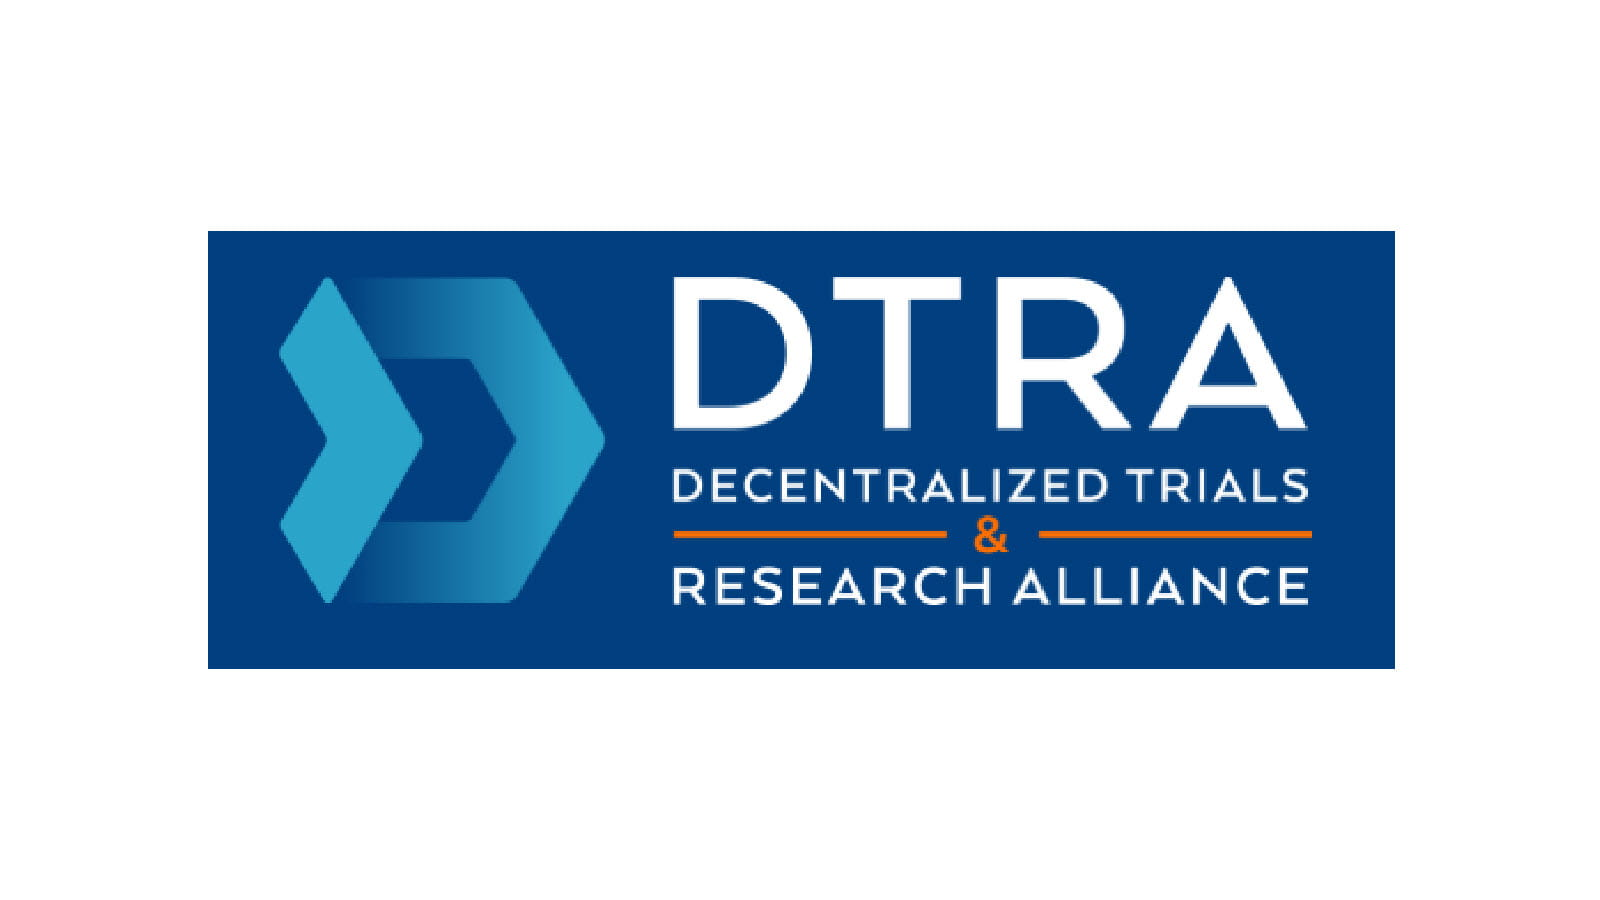 Blue Decentralized Trials Research Alliance logo